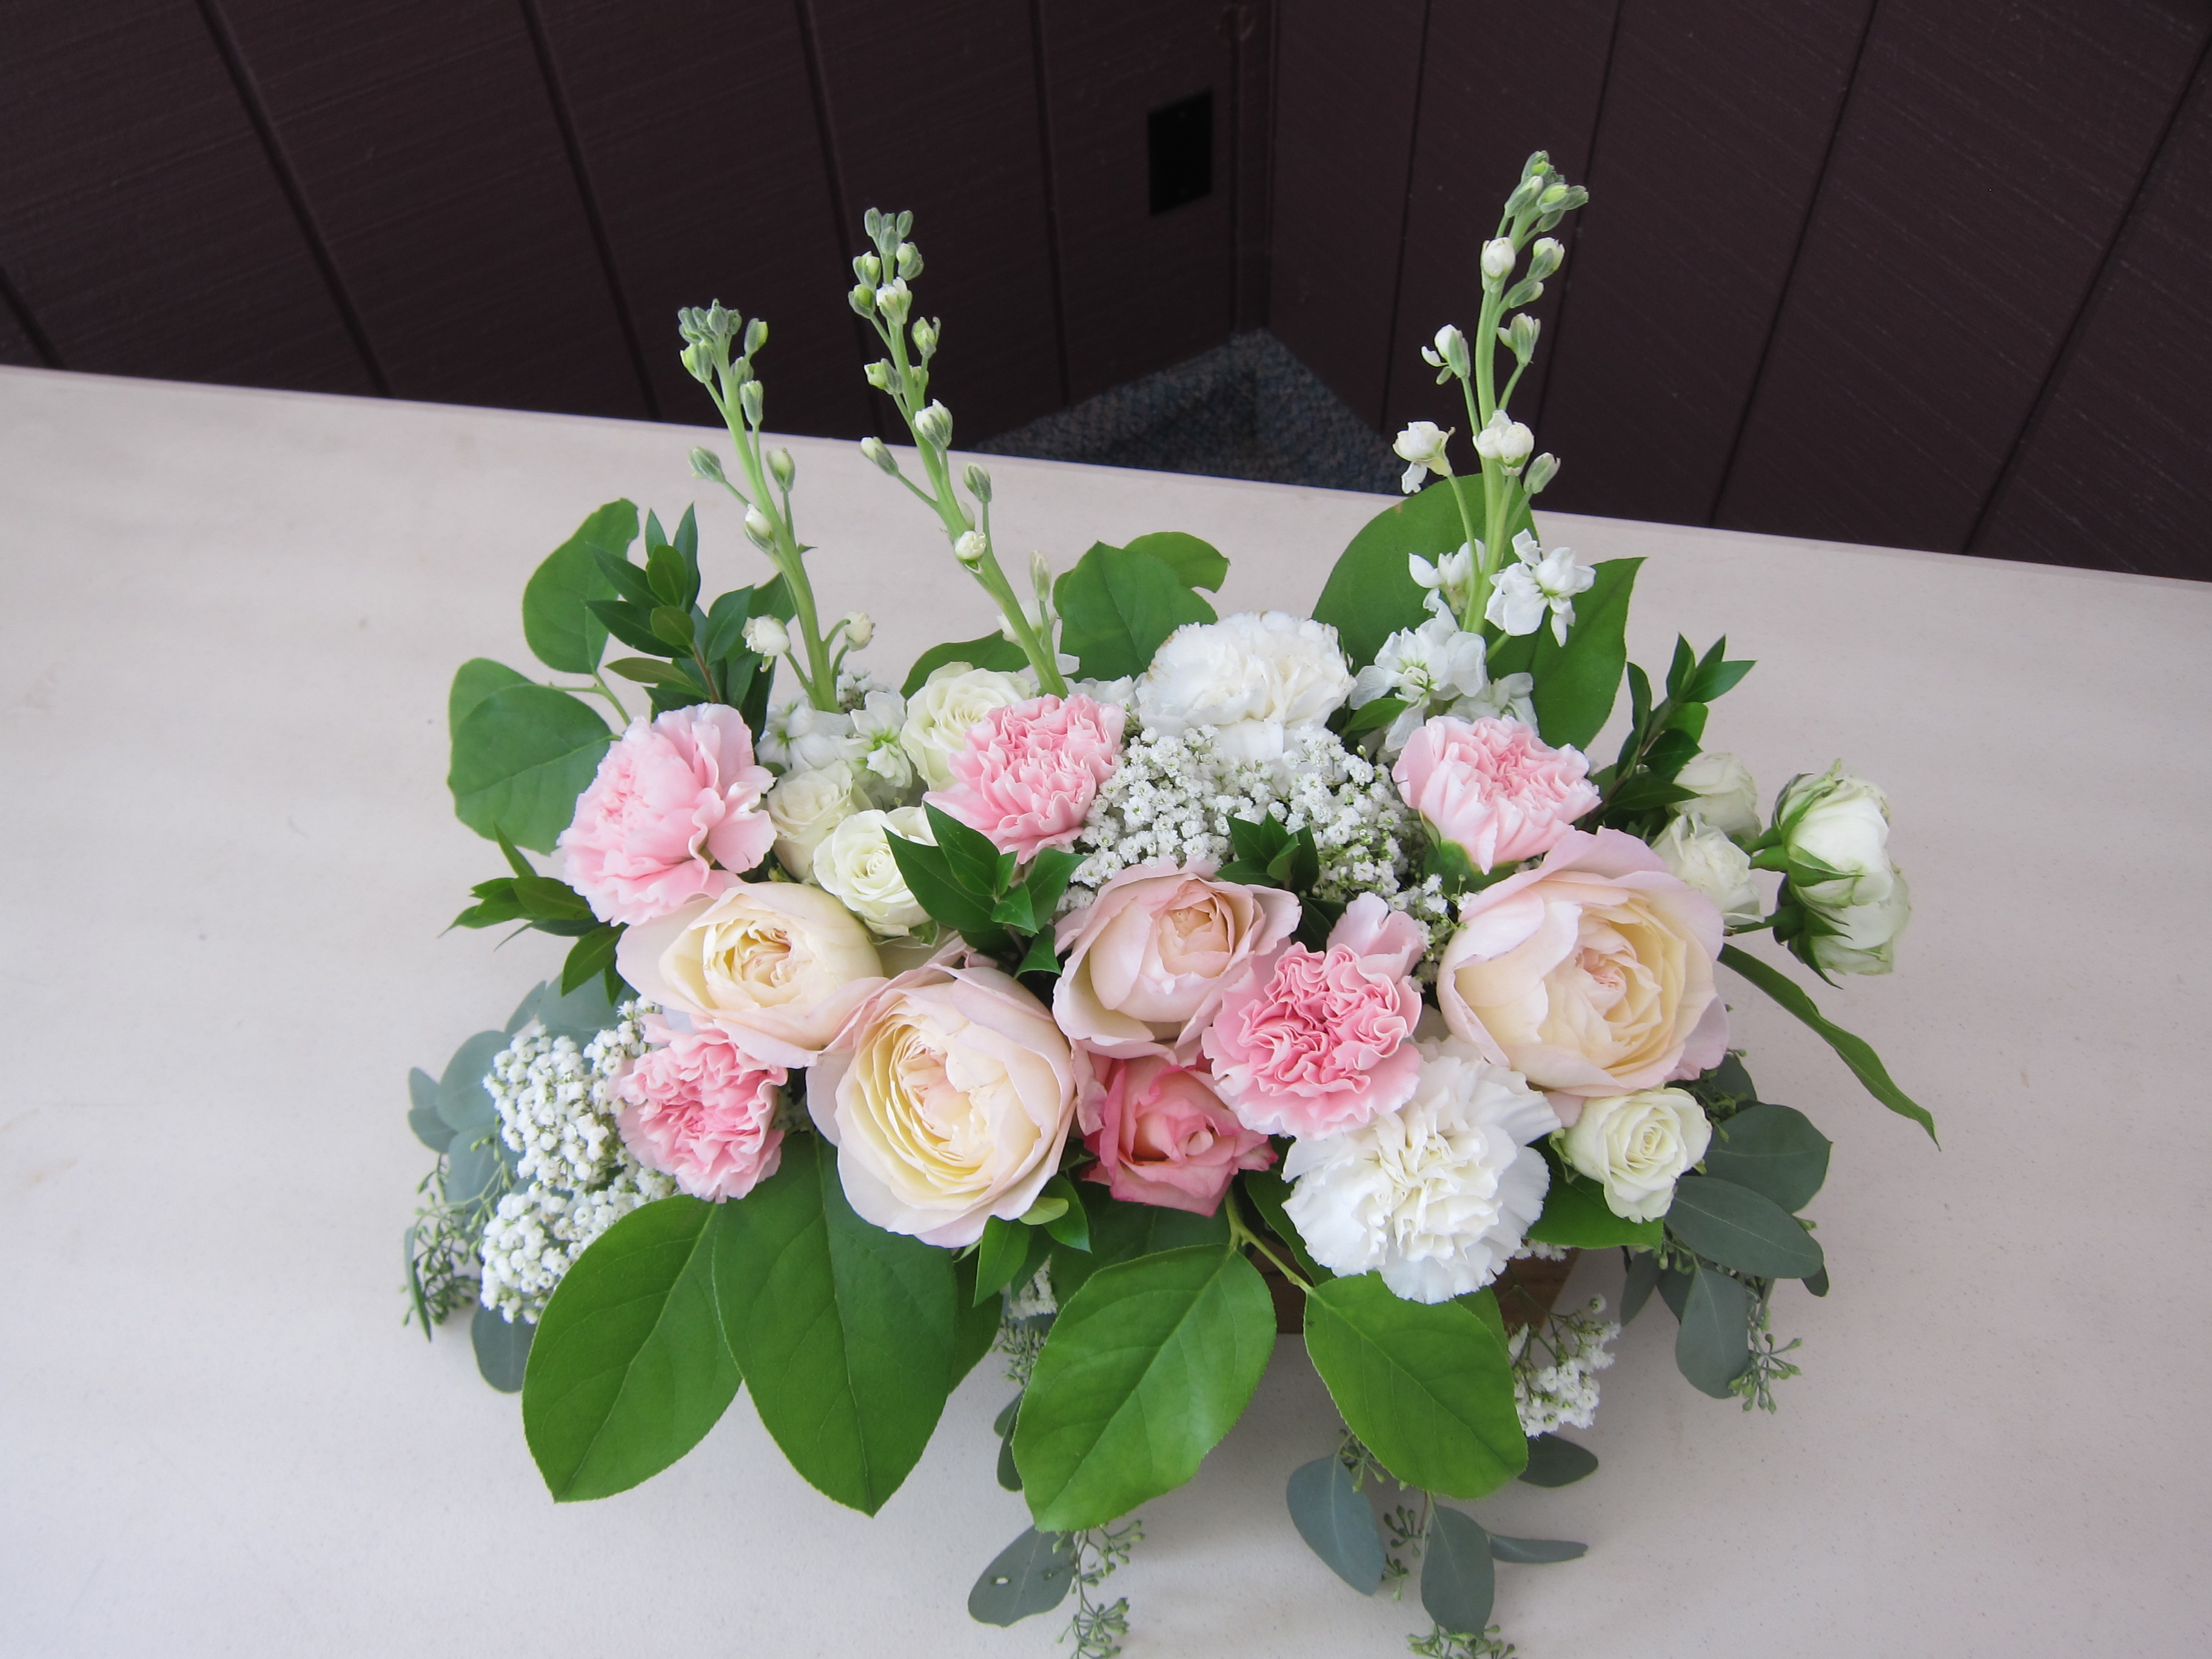 Wedding Centerpieces Made With Blush Garden Roses Lisianthus